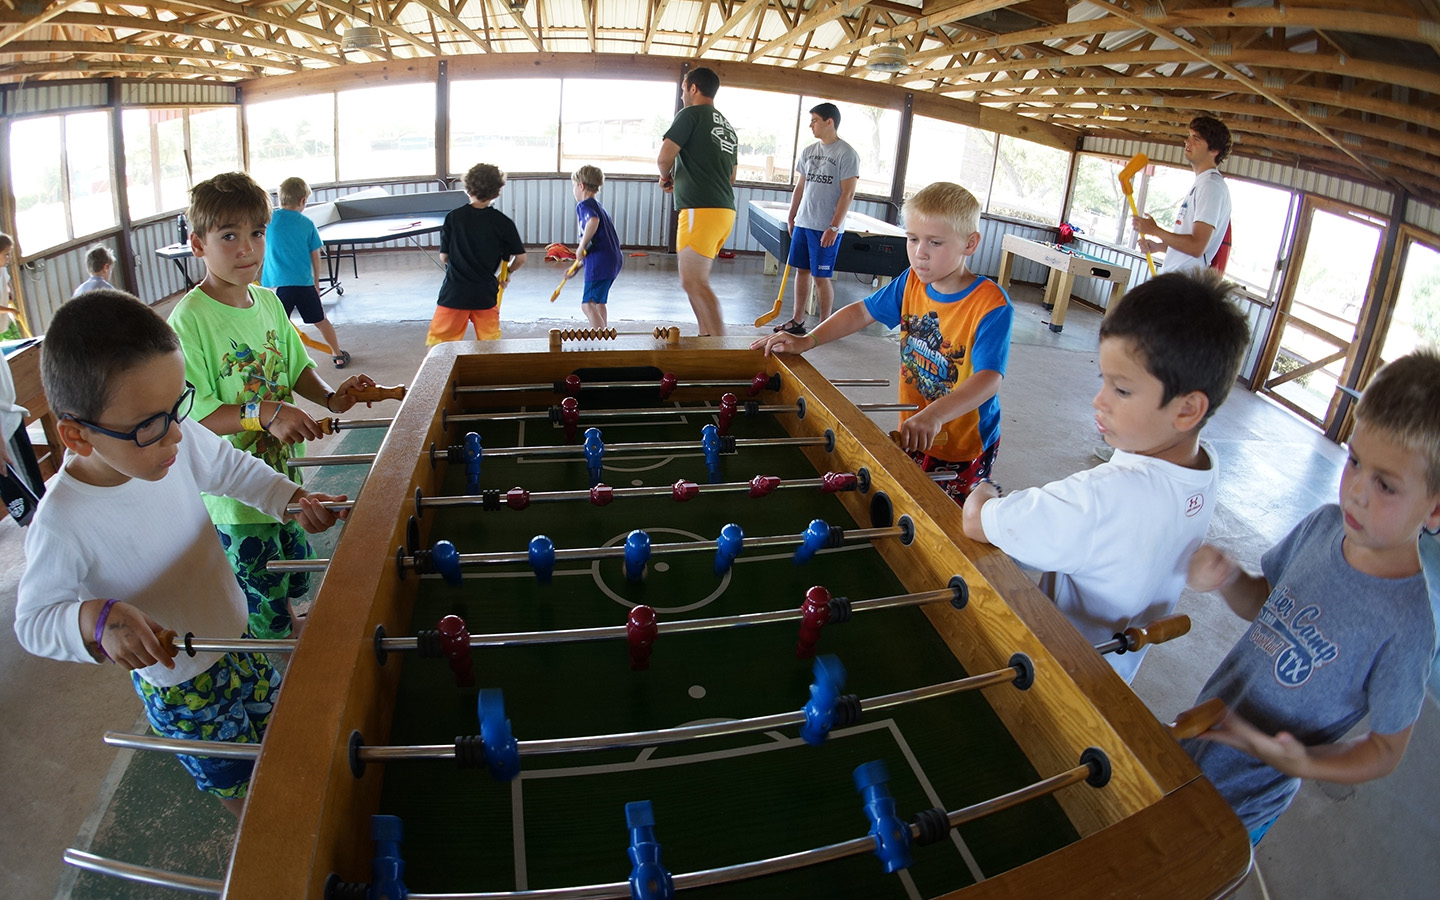 The game room at Camp Champions